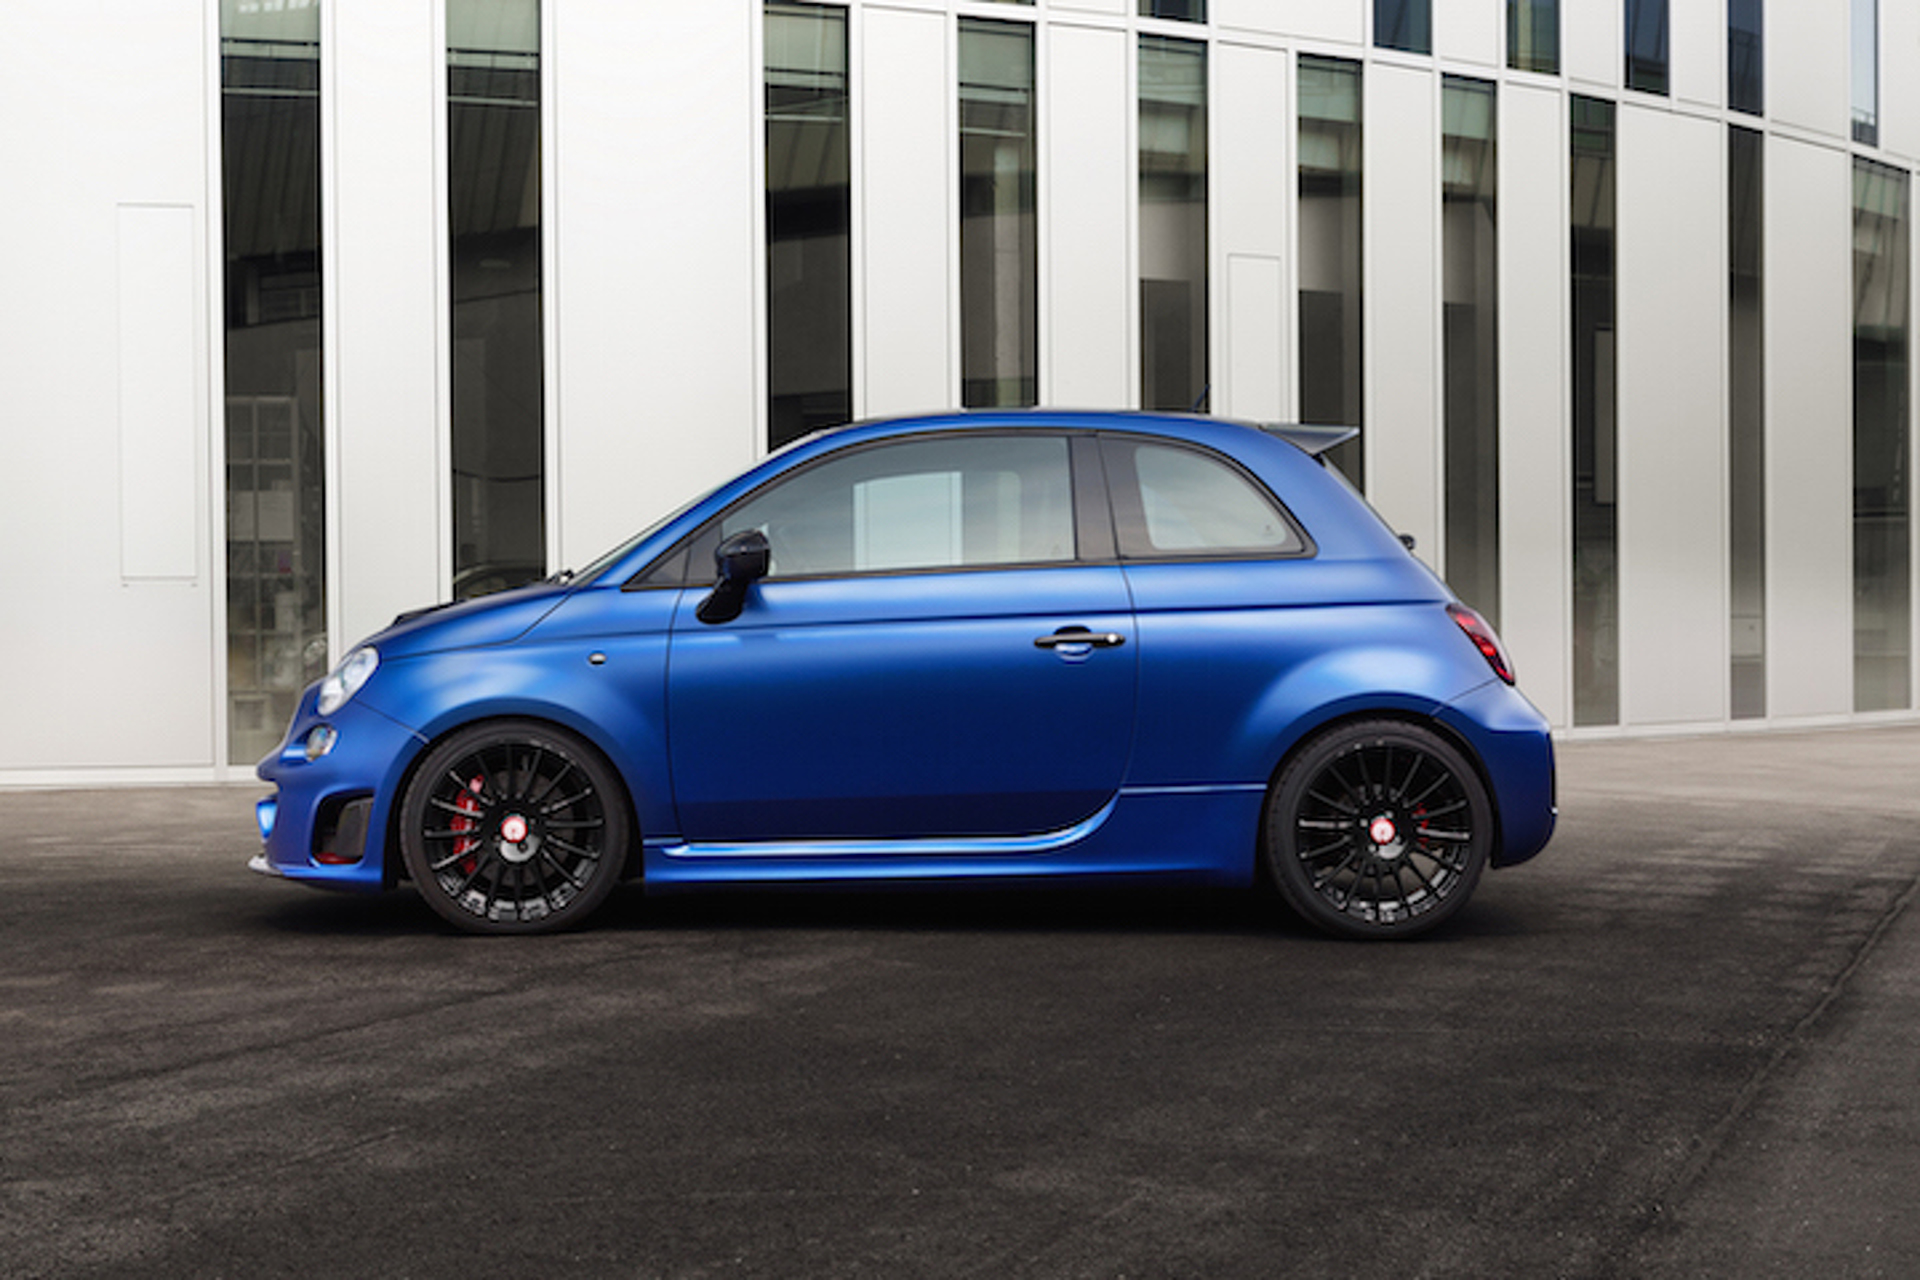 Italian Stallions Alfa 4c And Fiat 500 Abarth Get Racy Upgrades From Pogea